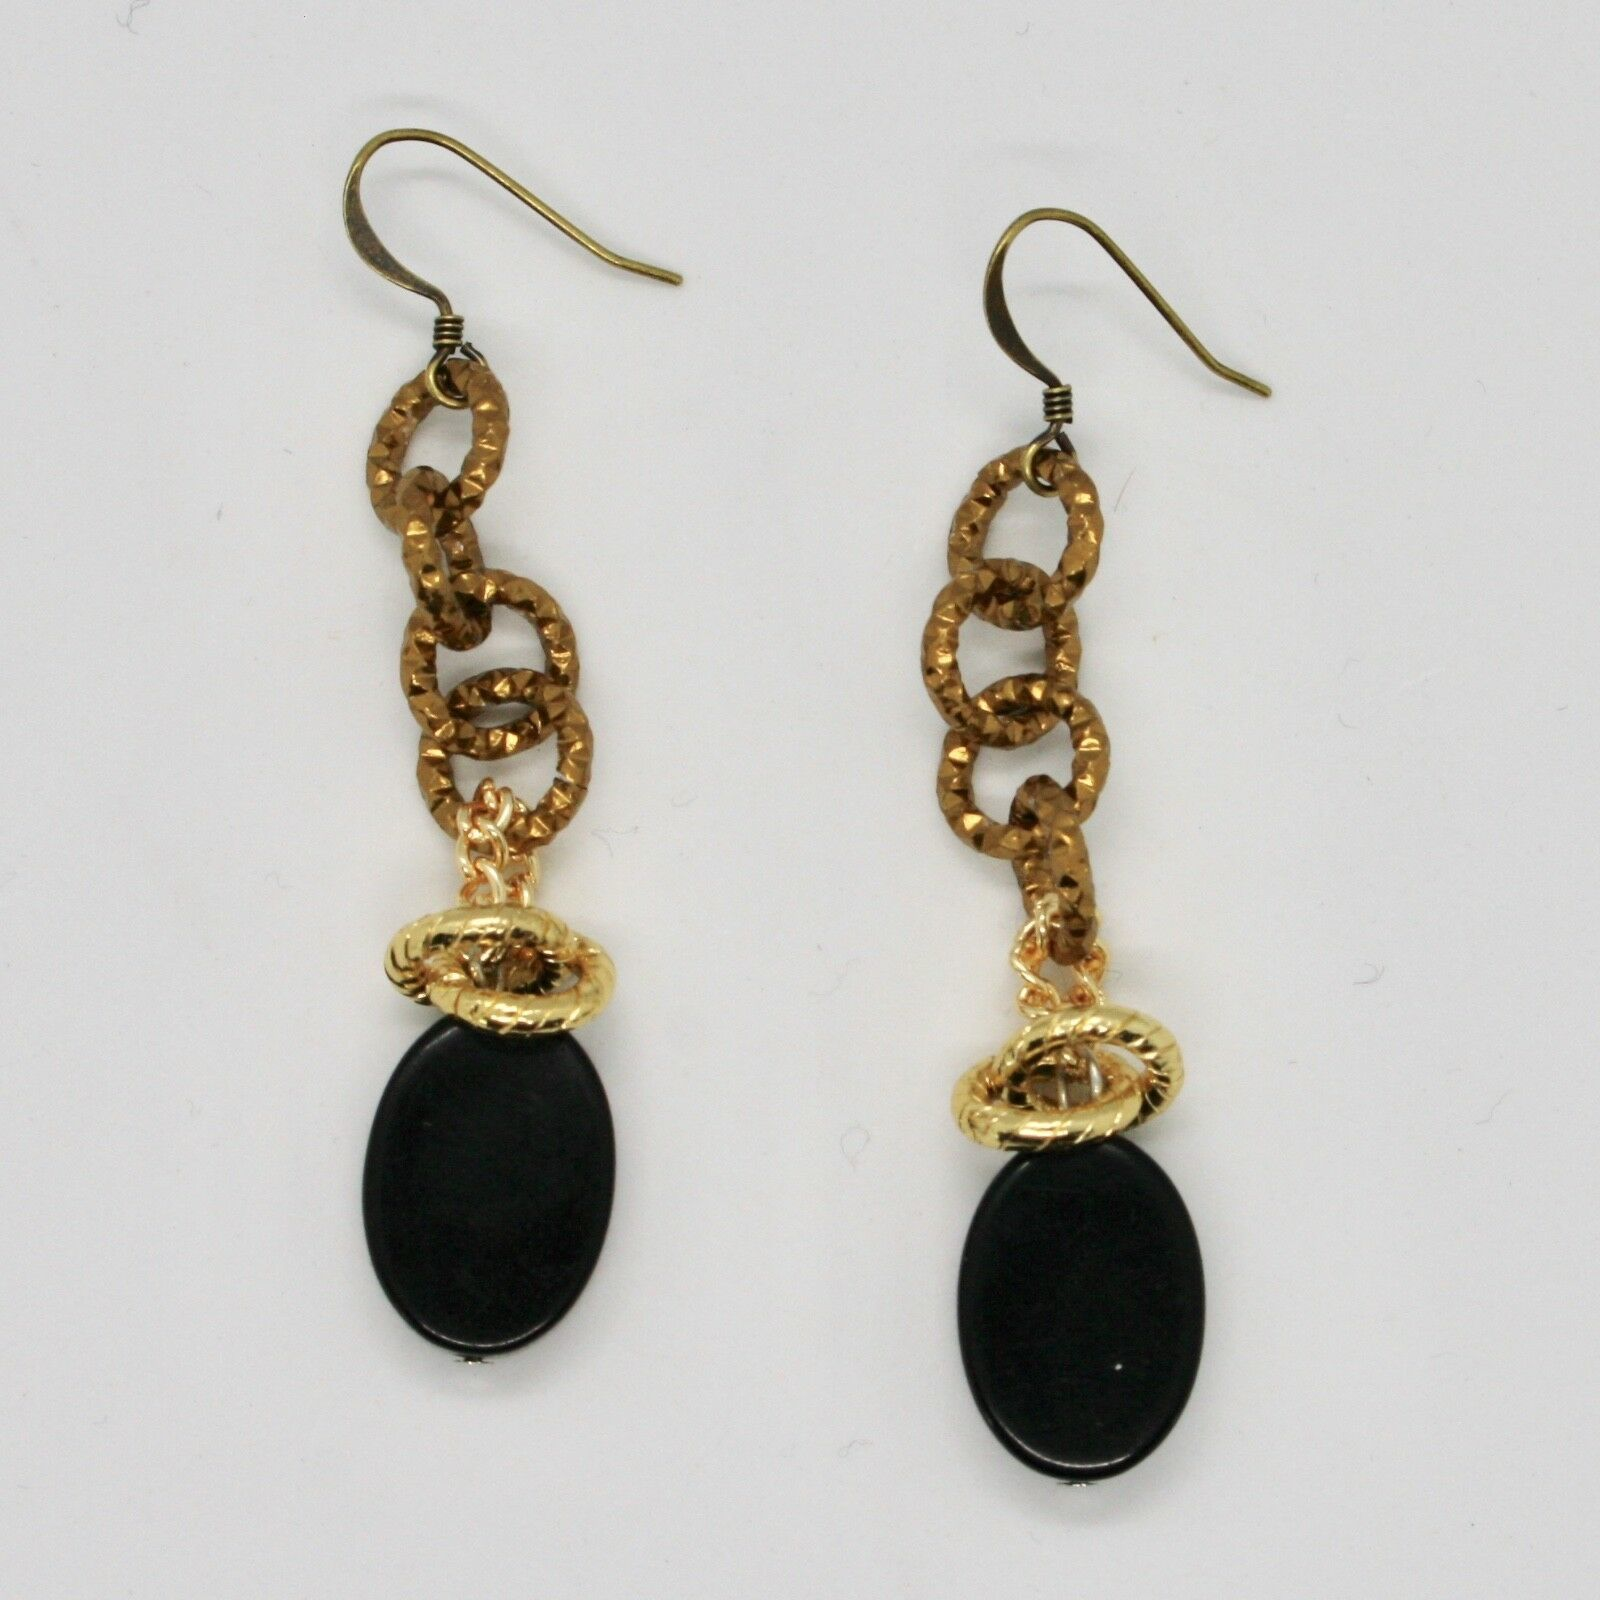 DROP EARRINGS ALUMINUM LAMINATED YELLOW GOLD WITH ONYX BLACK OVAL